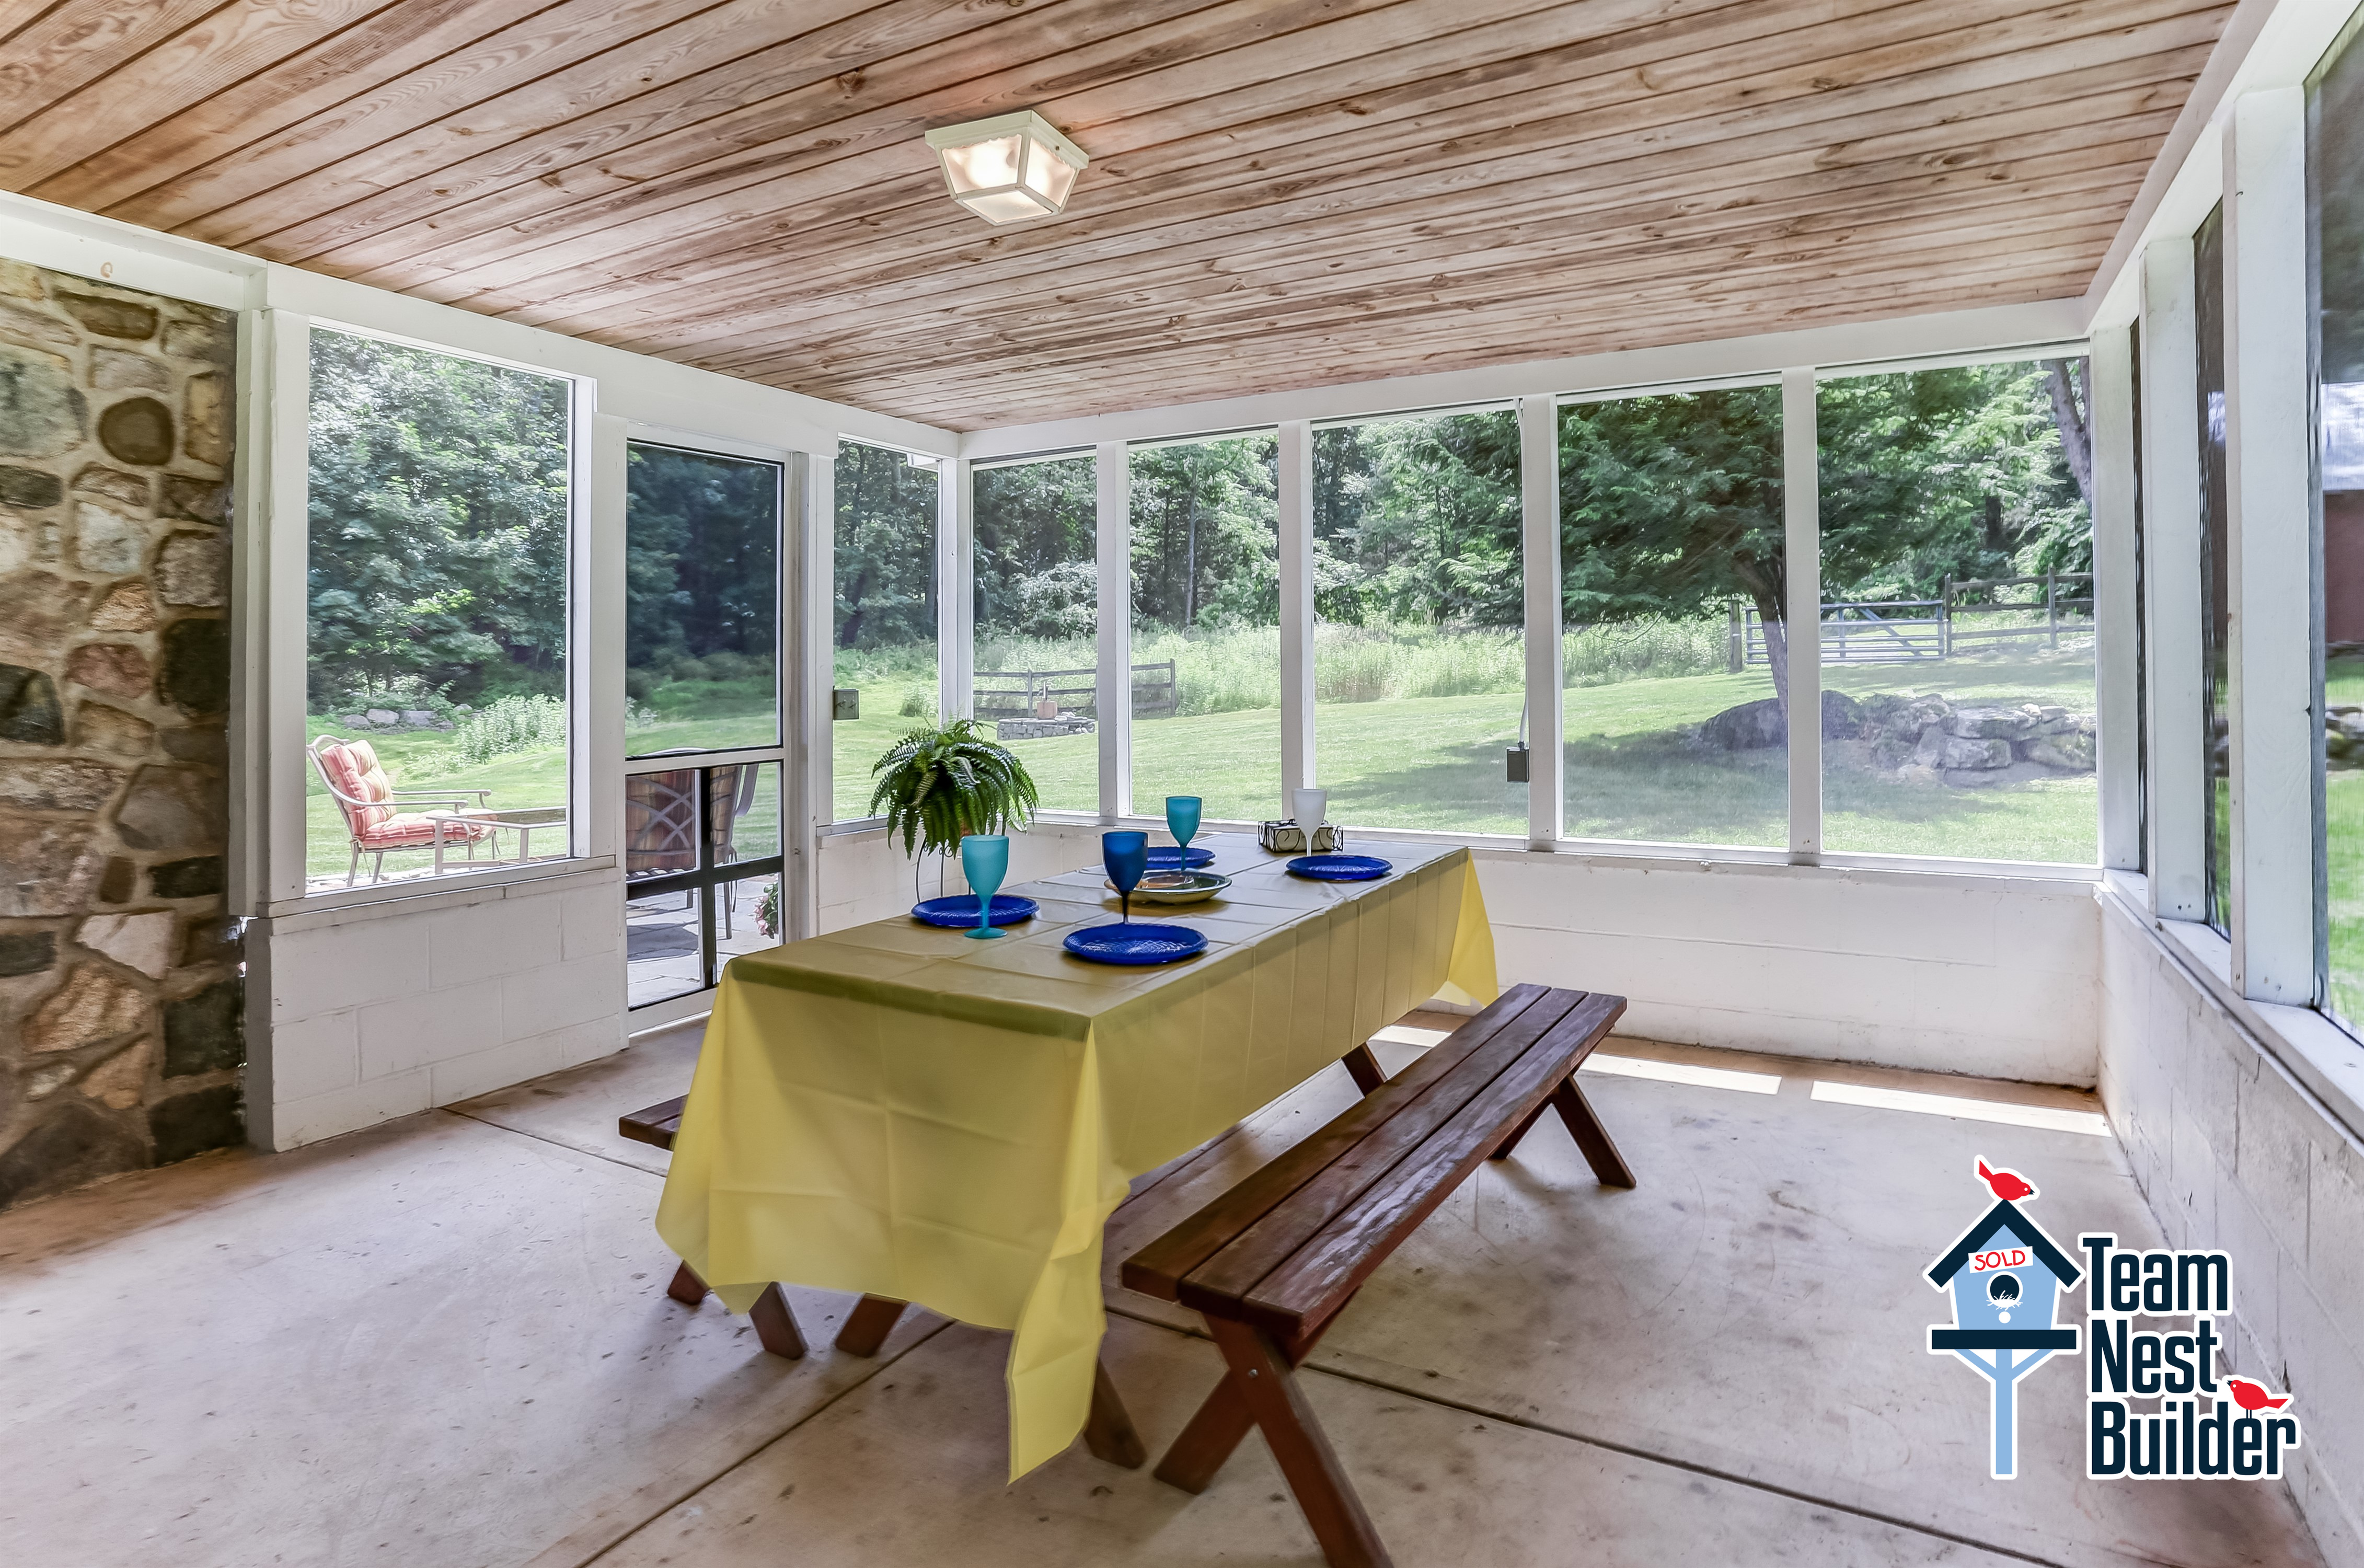 Enjoy entertaining in your screened-in porch